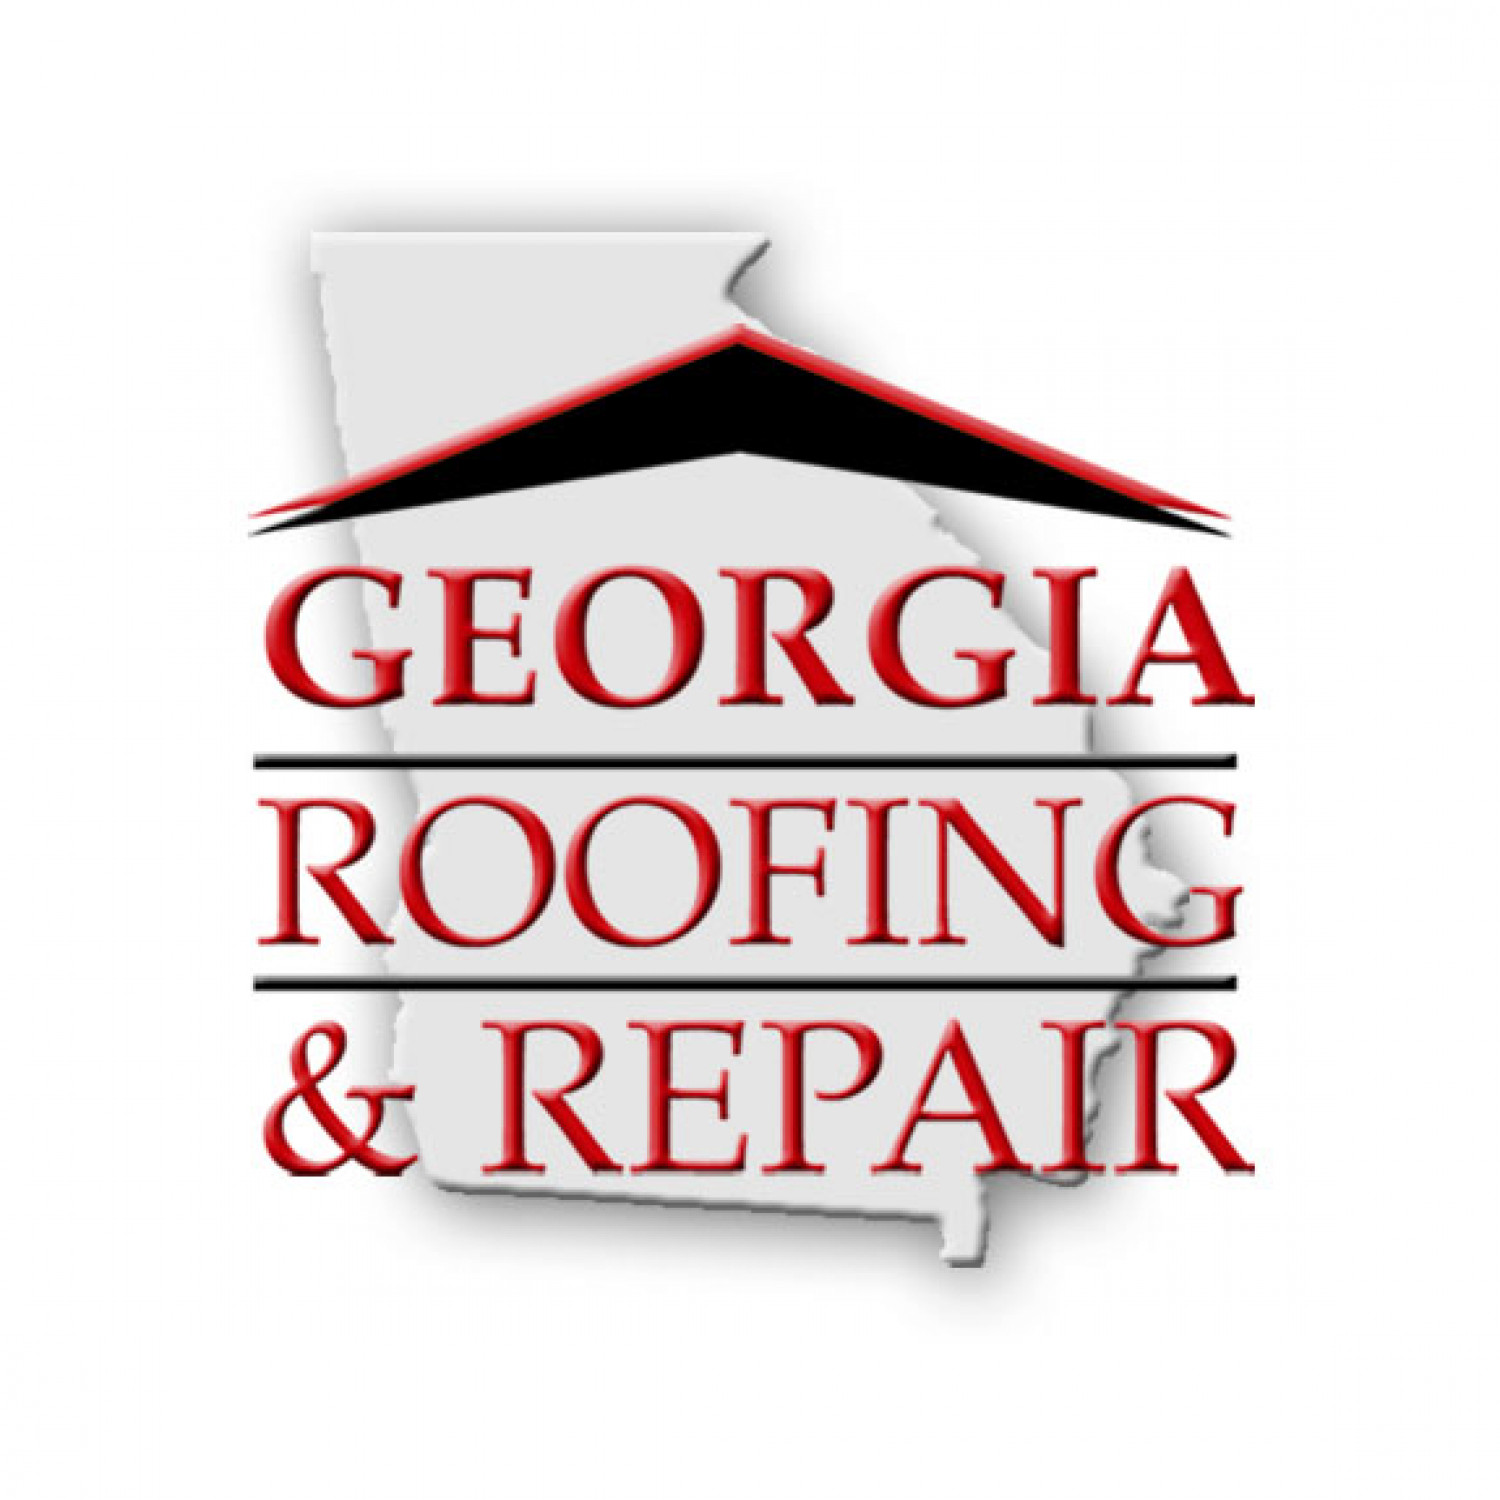 Georgia Roofing & Repair, Inc. Infographic